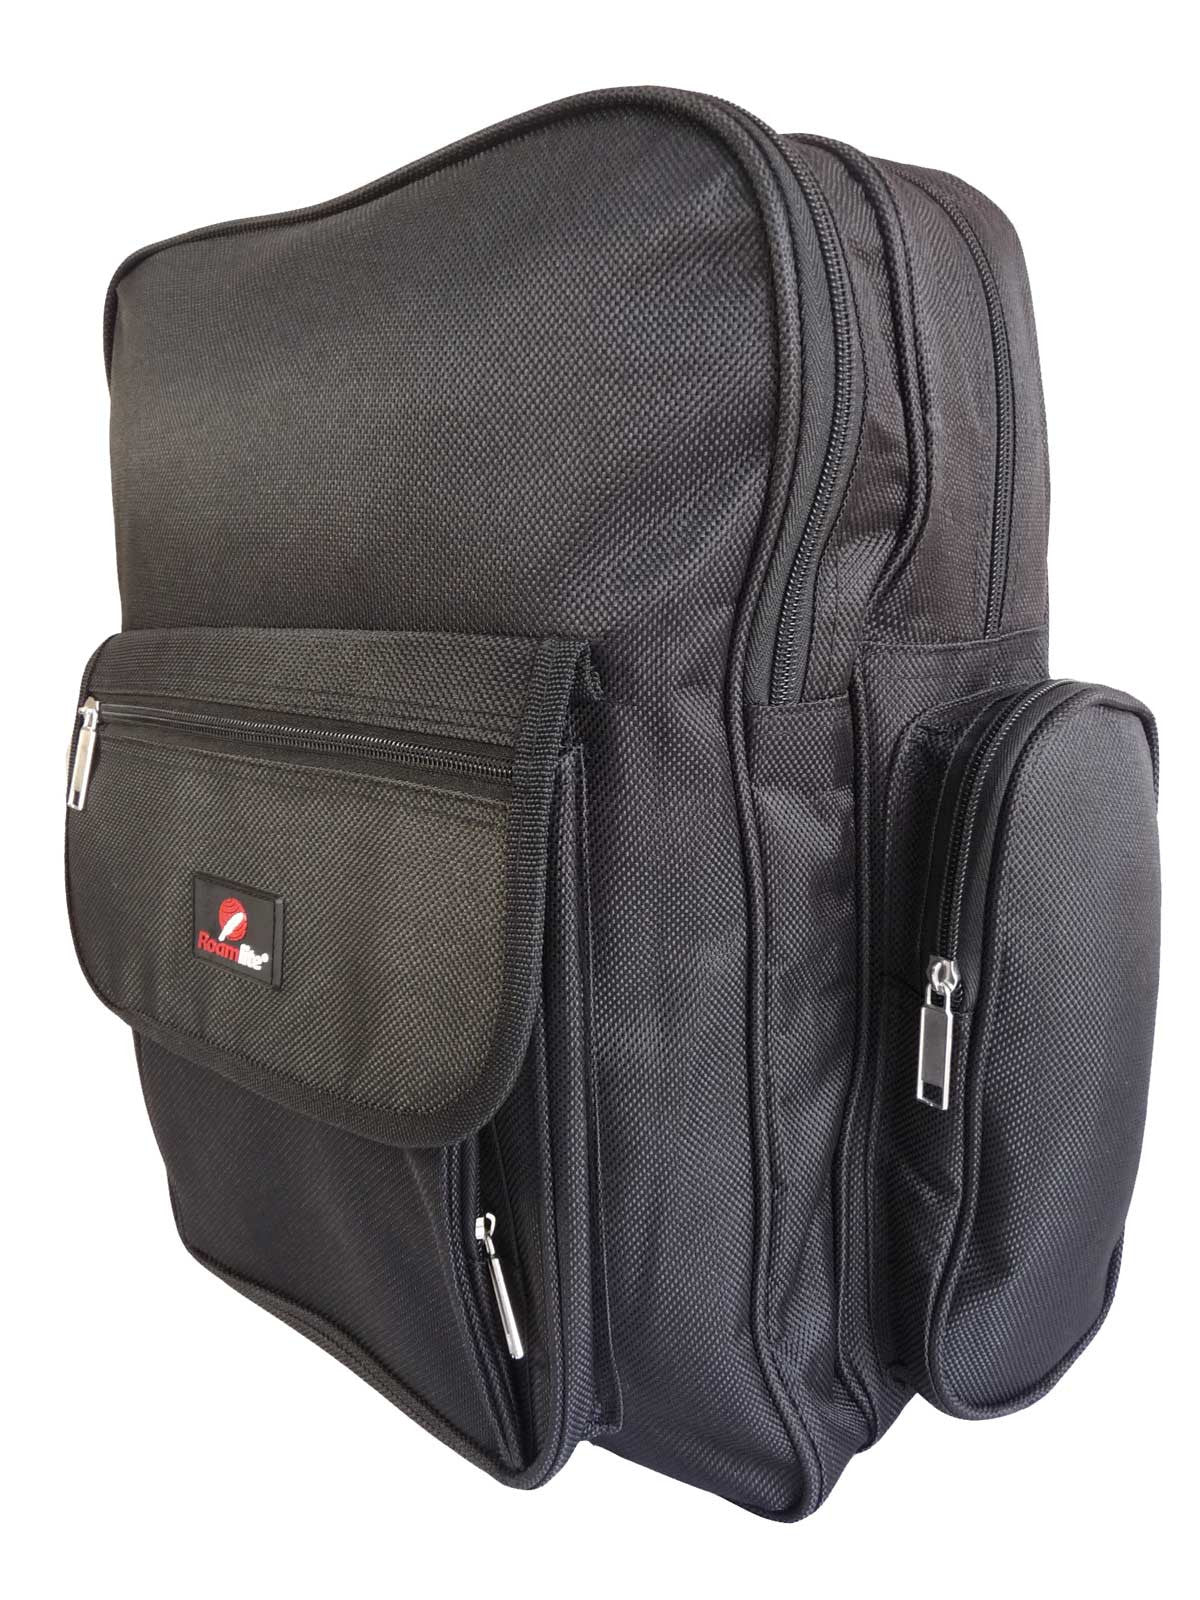 Black School Backpack RL60Ks Side View